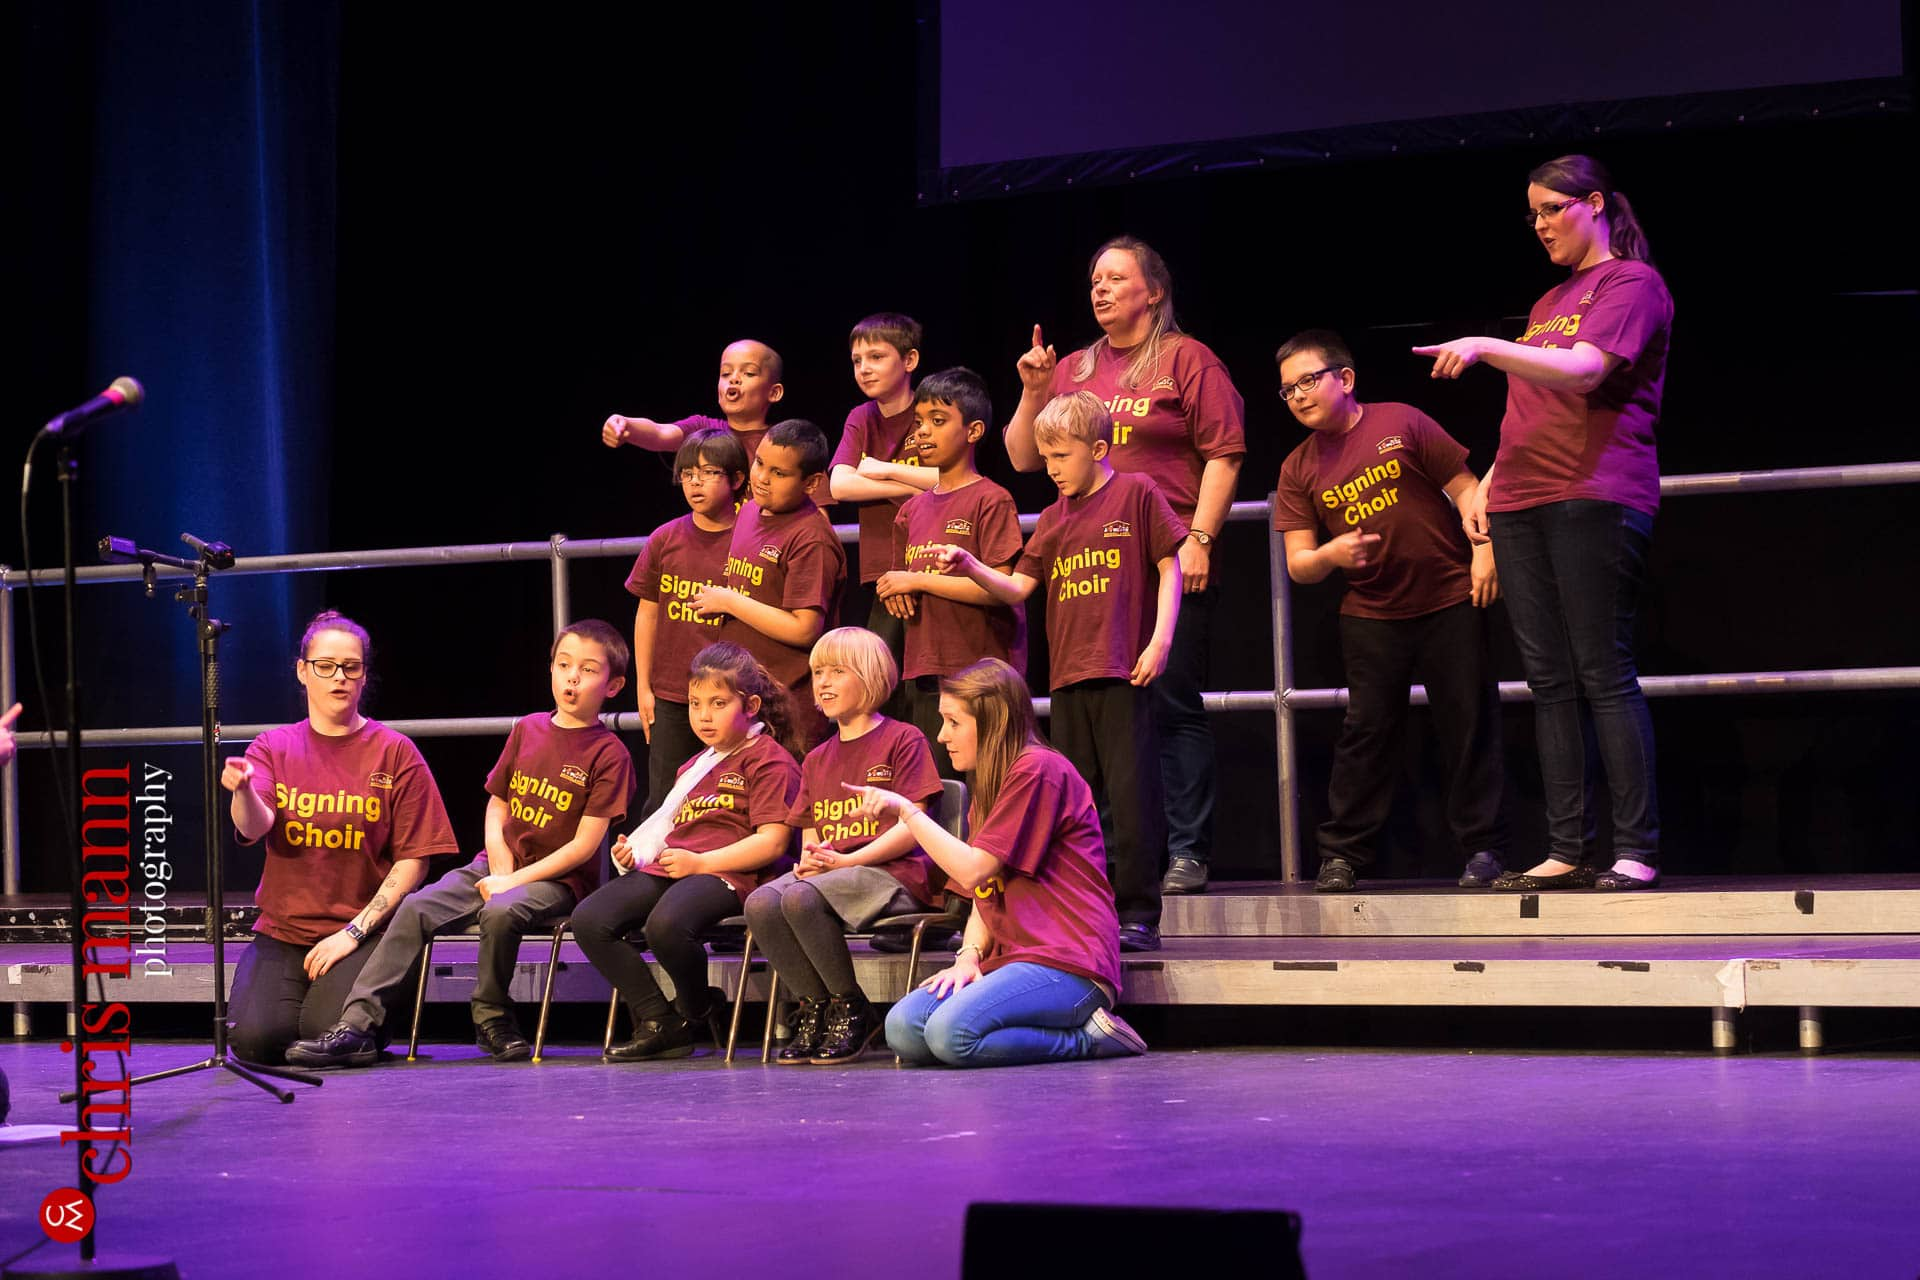 Brooklands School Signing Choir perform at Choiroke 2016 concert Dorking Halls